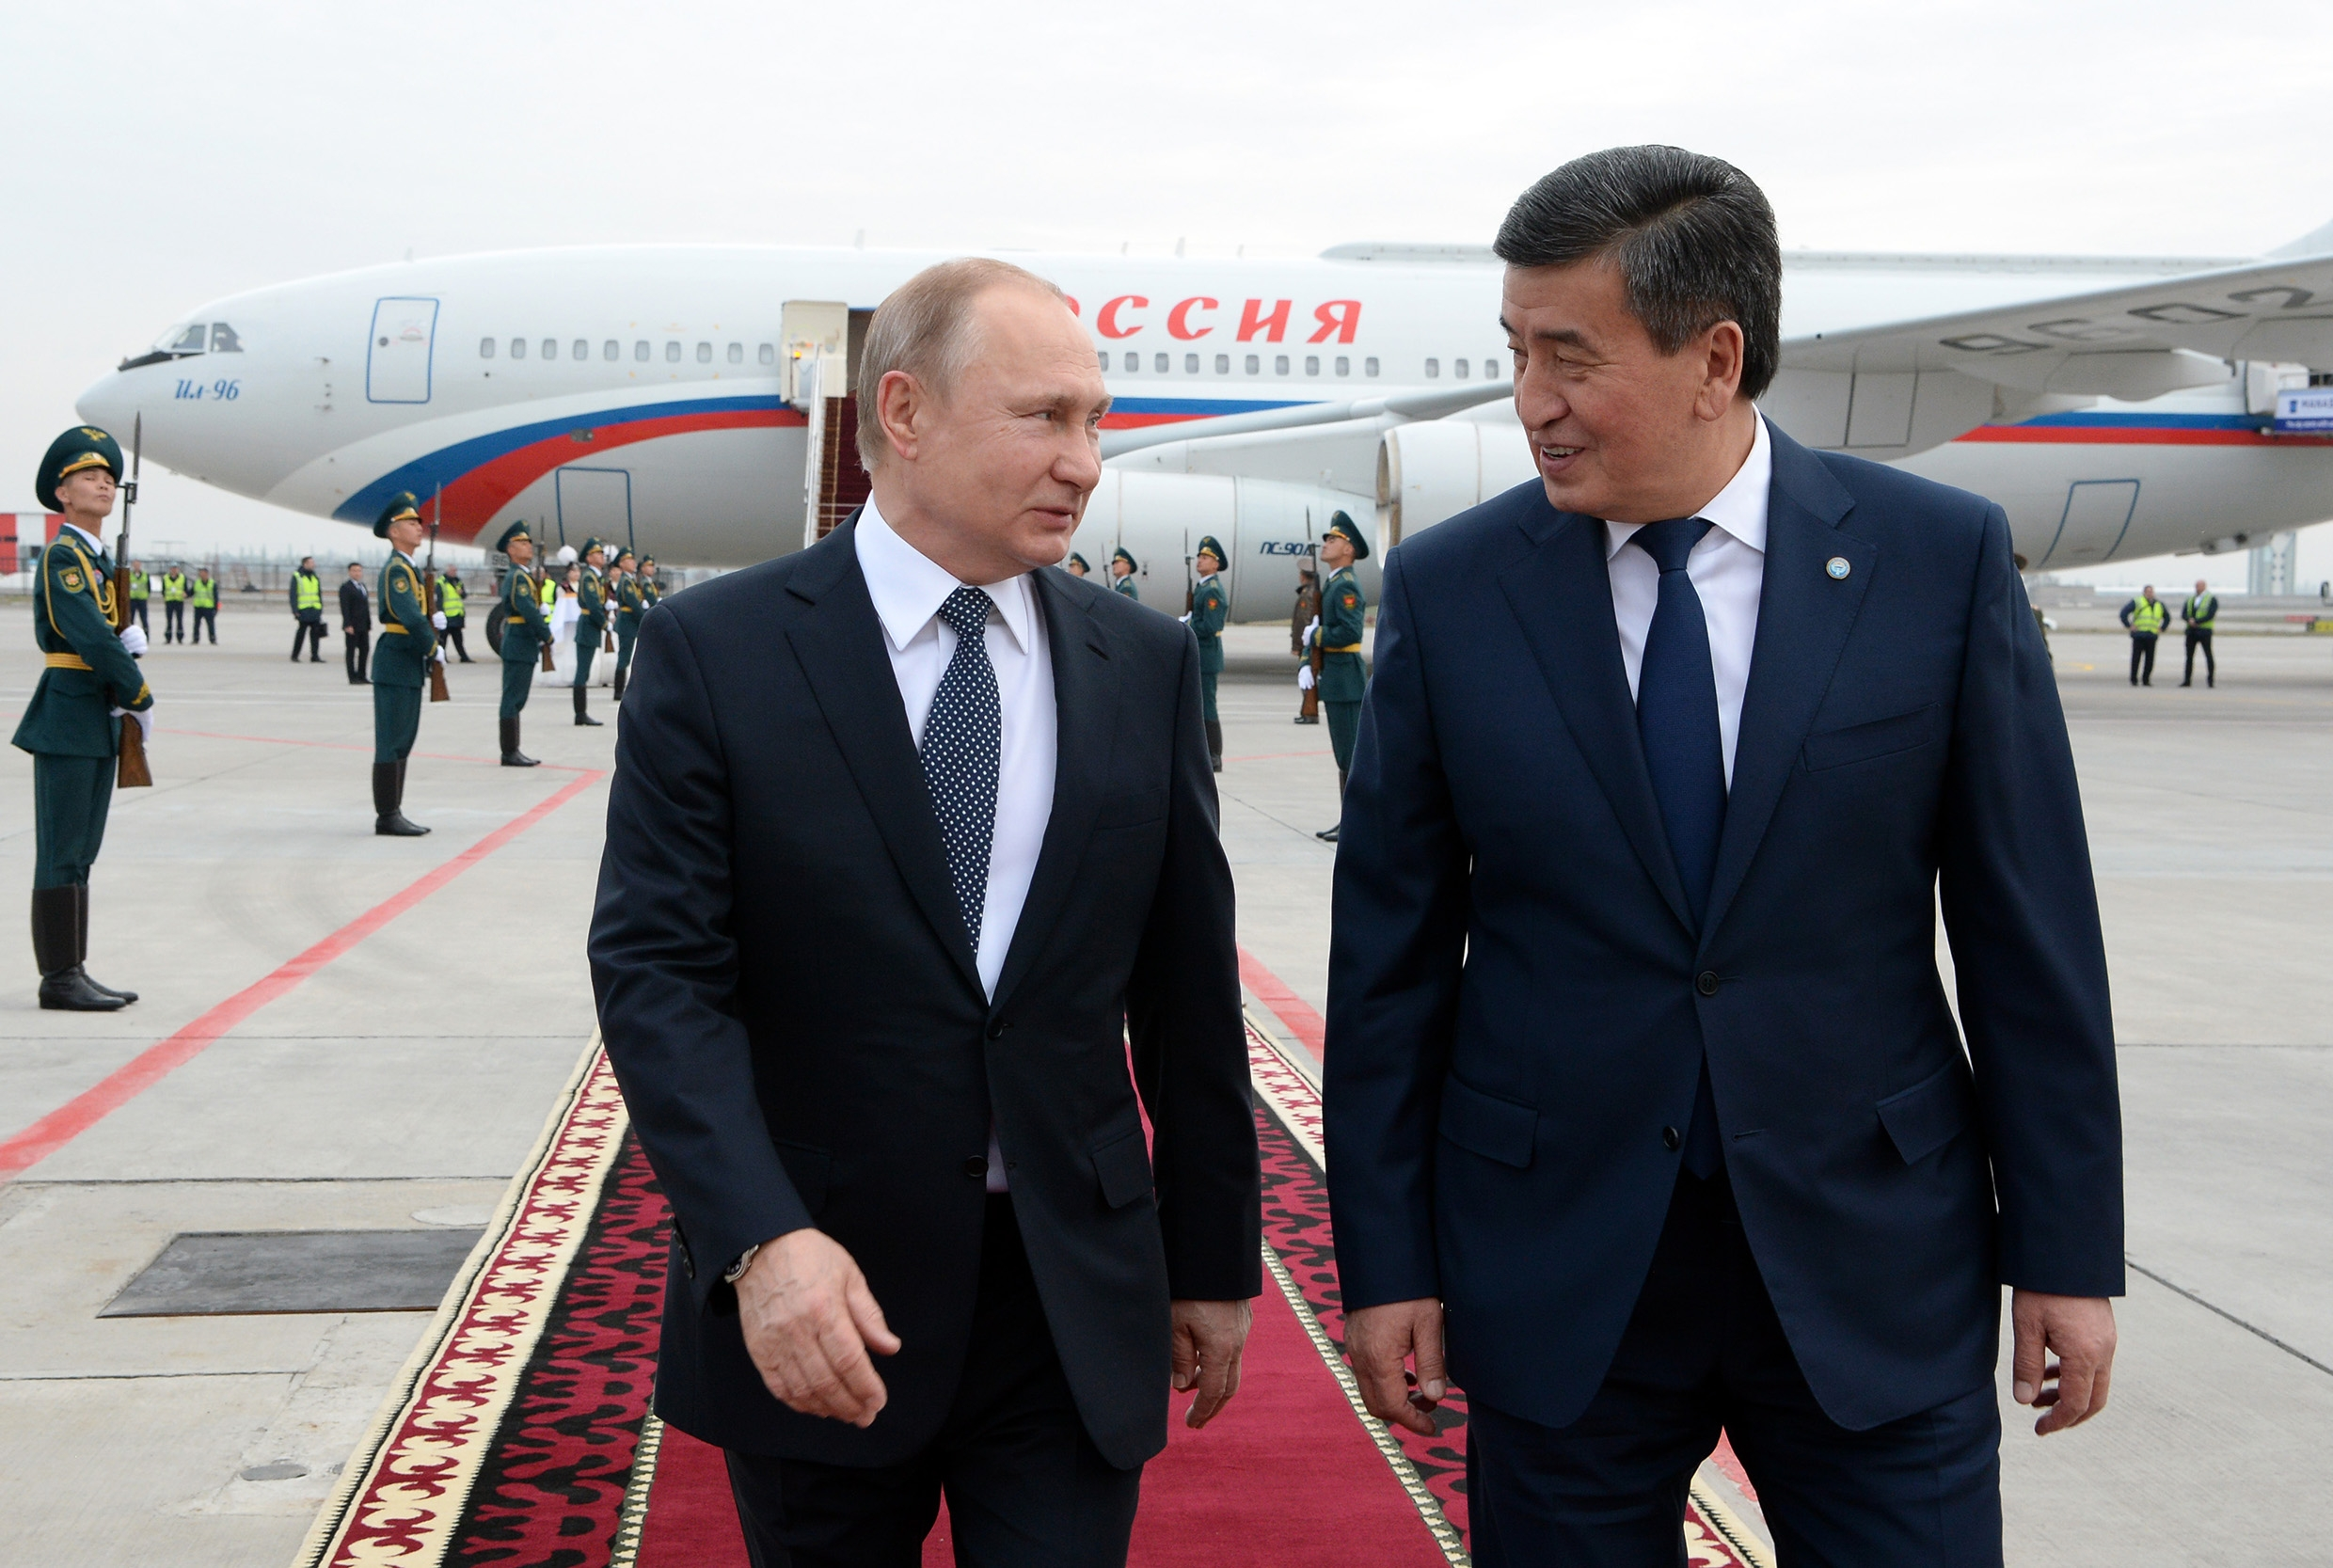 BFFs: Putin and Jeenbekov chatting on the runway at Manas International Airport. (Photo: Kyrgyz presidential administration)